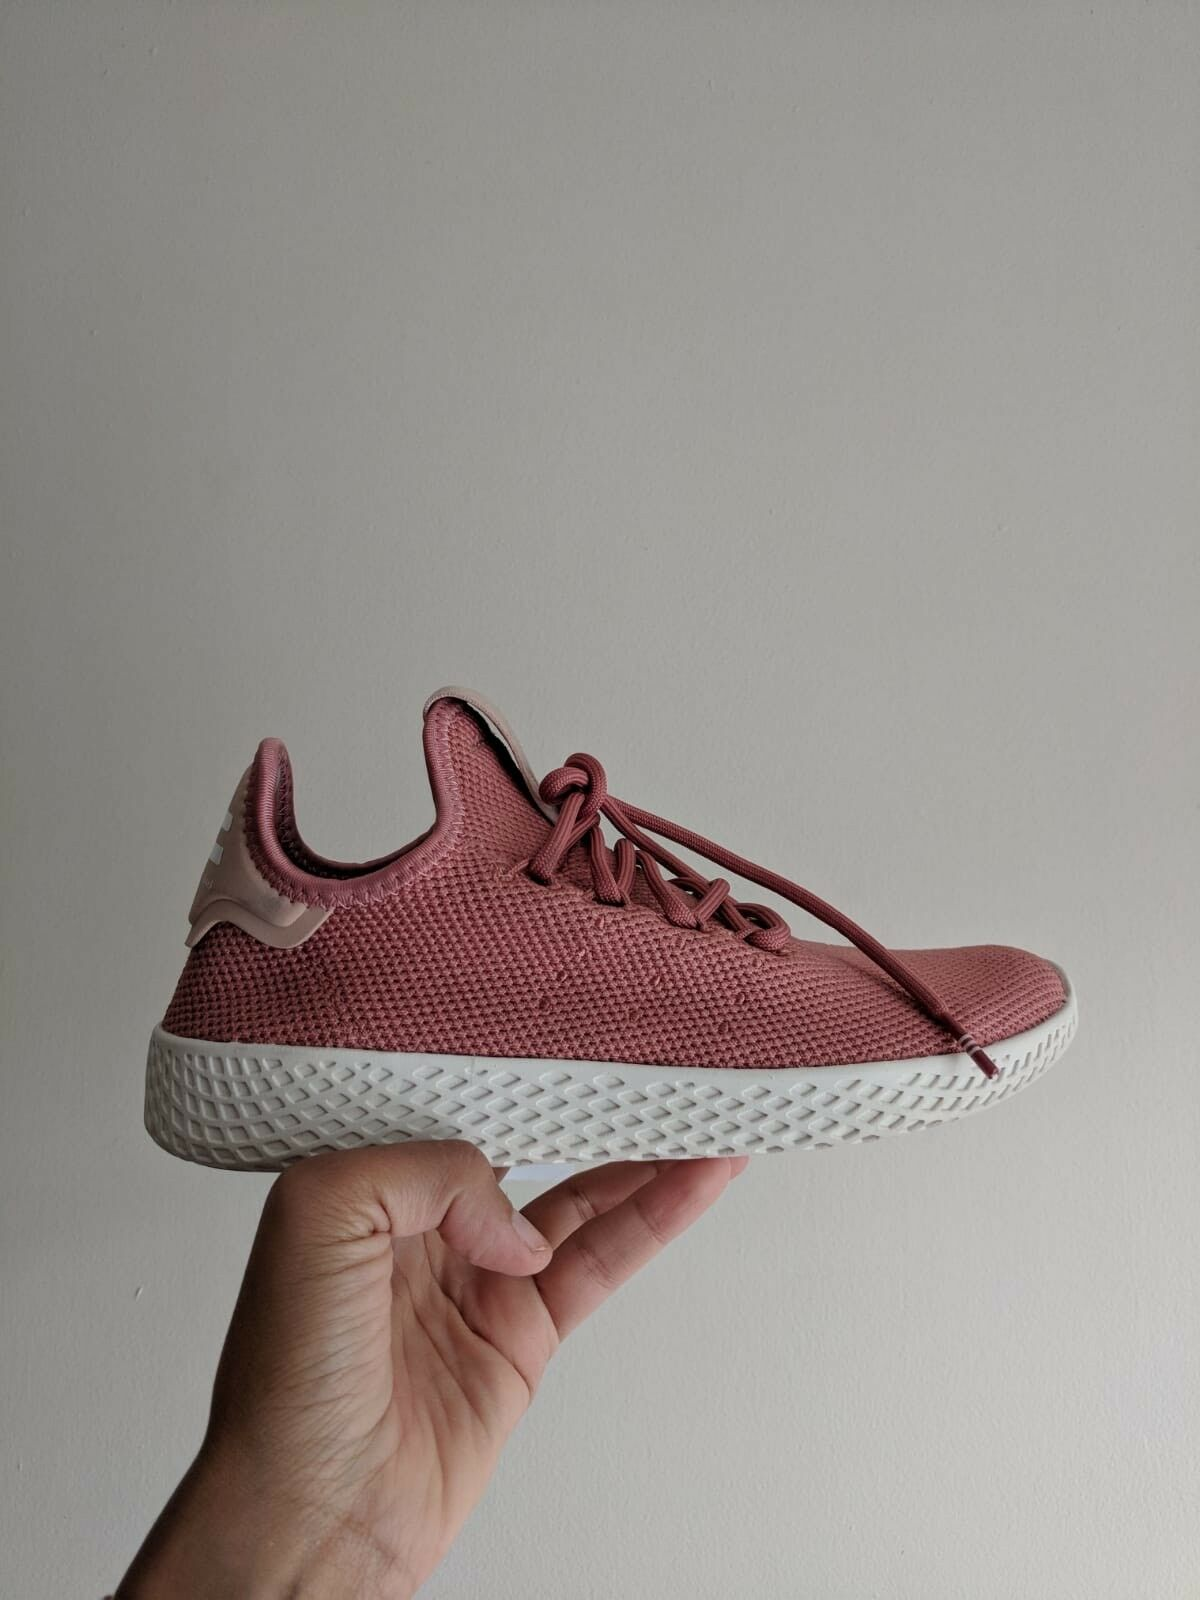 nouveau adidas pharrell williams formateurs rose rose rose royaume uni taille 4 7f8c4e